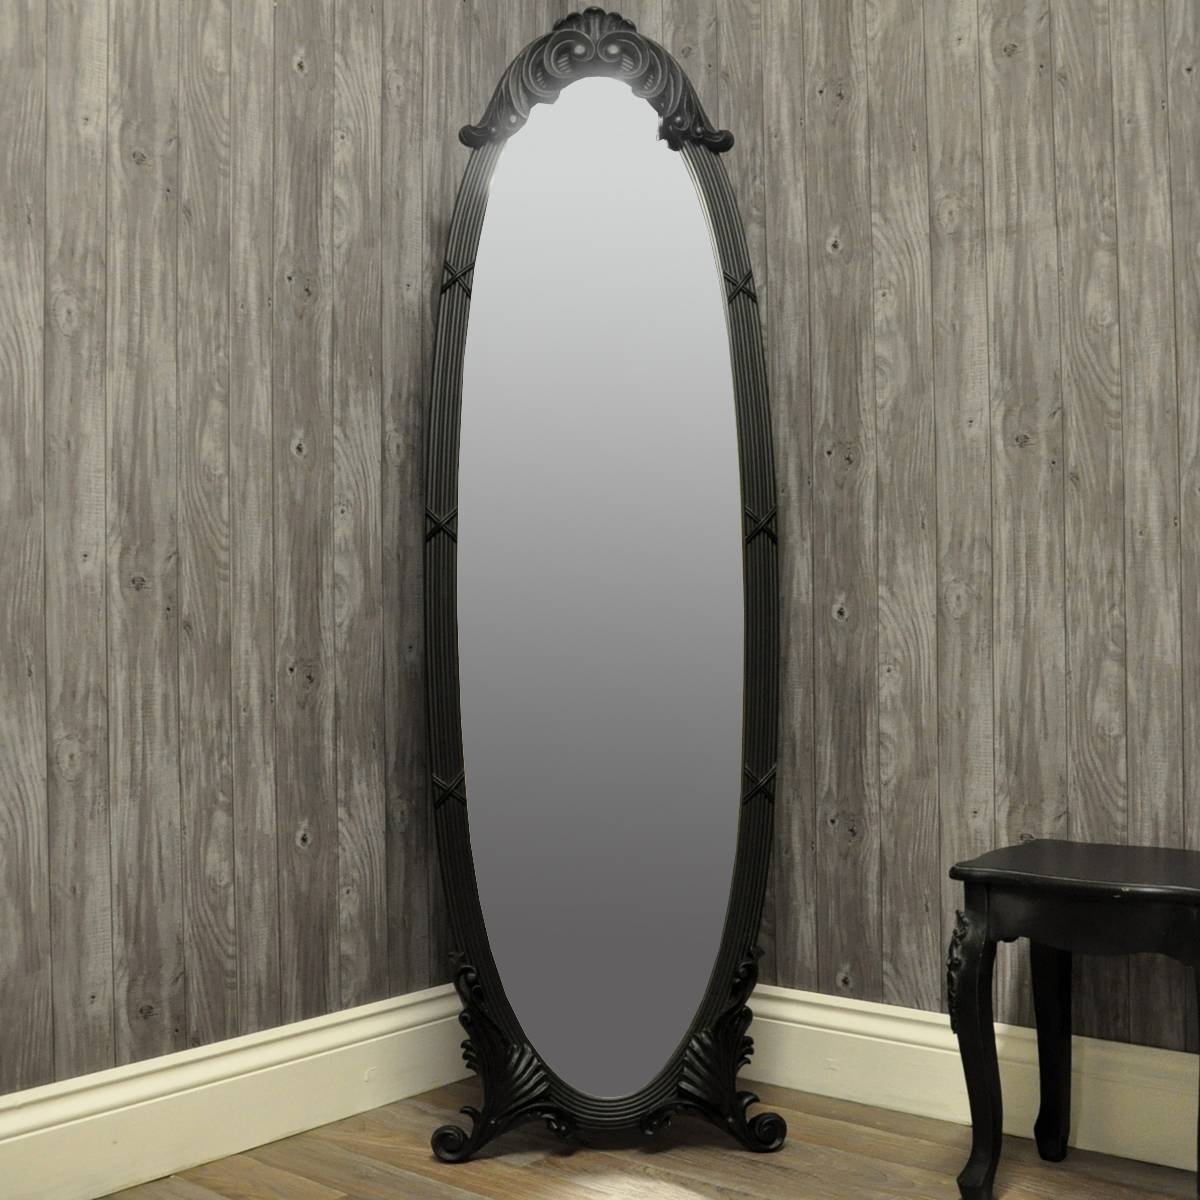 Choose From A Range Of Full Length Cheval Mirrors In French Full Length Mirrors (View 2 of 25)